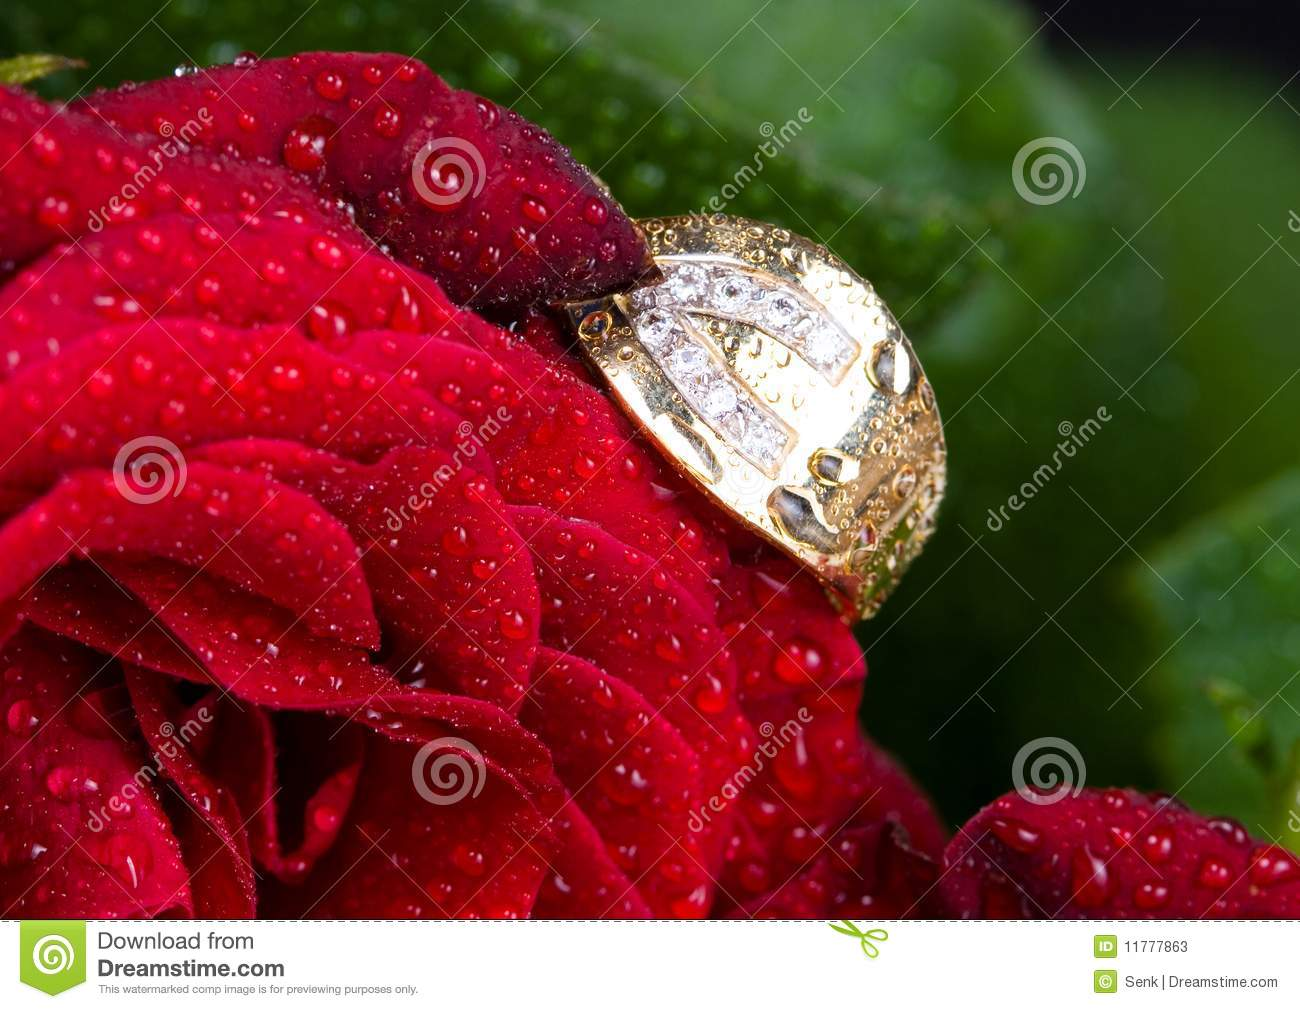 ... and red rose. Close up and Macro shot of a gold ring in a red rose